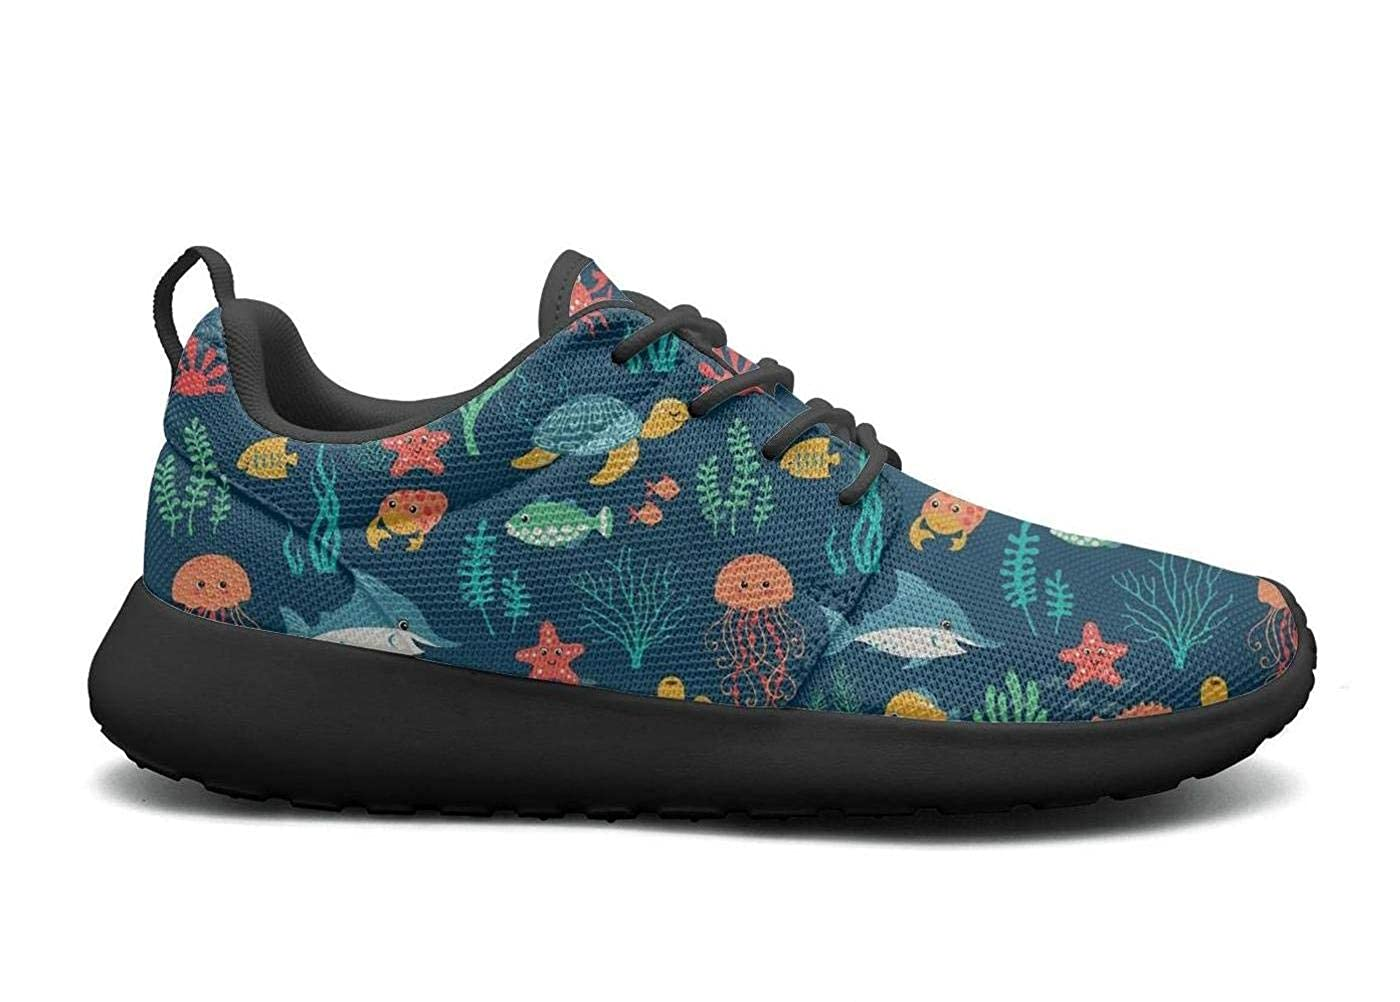 LOKIJM Crab Shrimp Octopus Llobster Sea and Turtle Tennis Shoes for Women Print Skid-Proof Girl Running Shoes